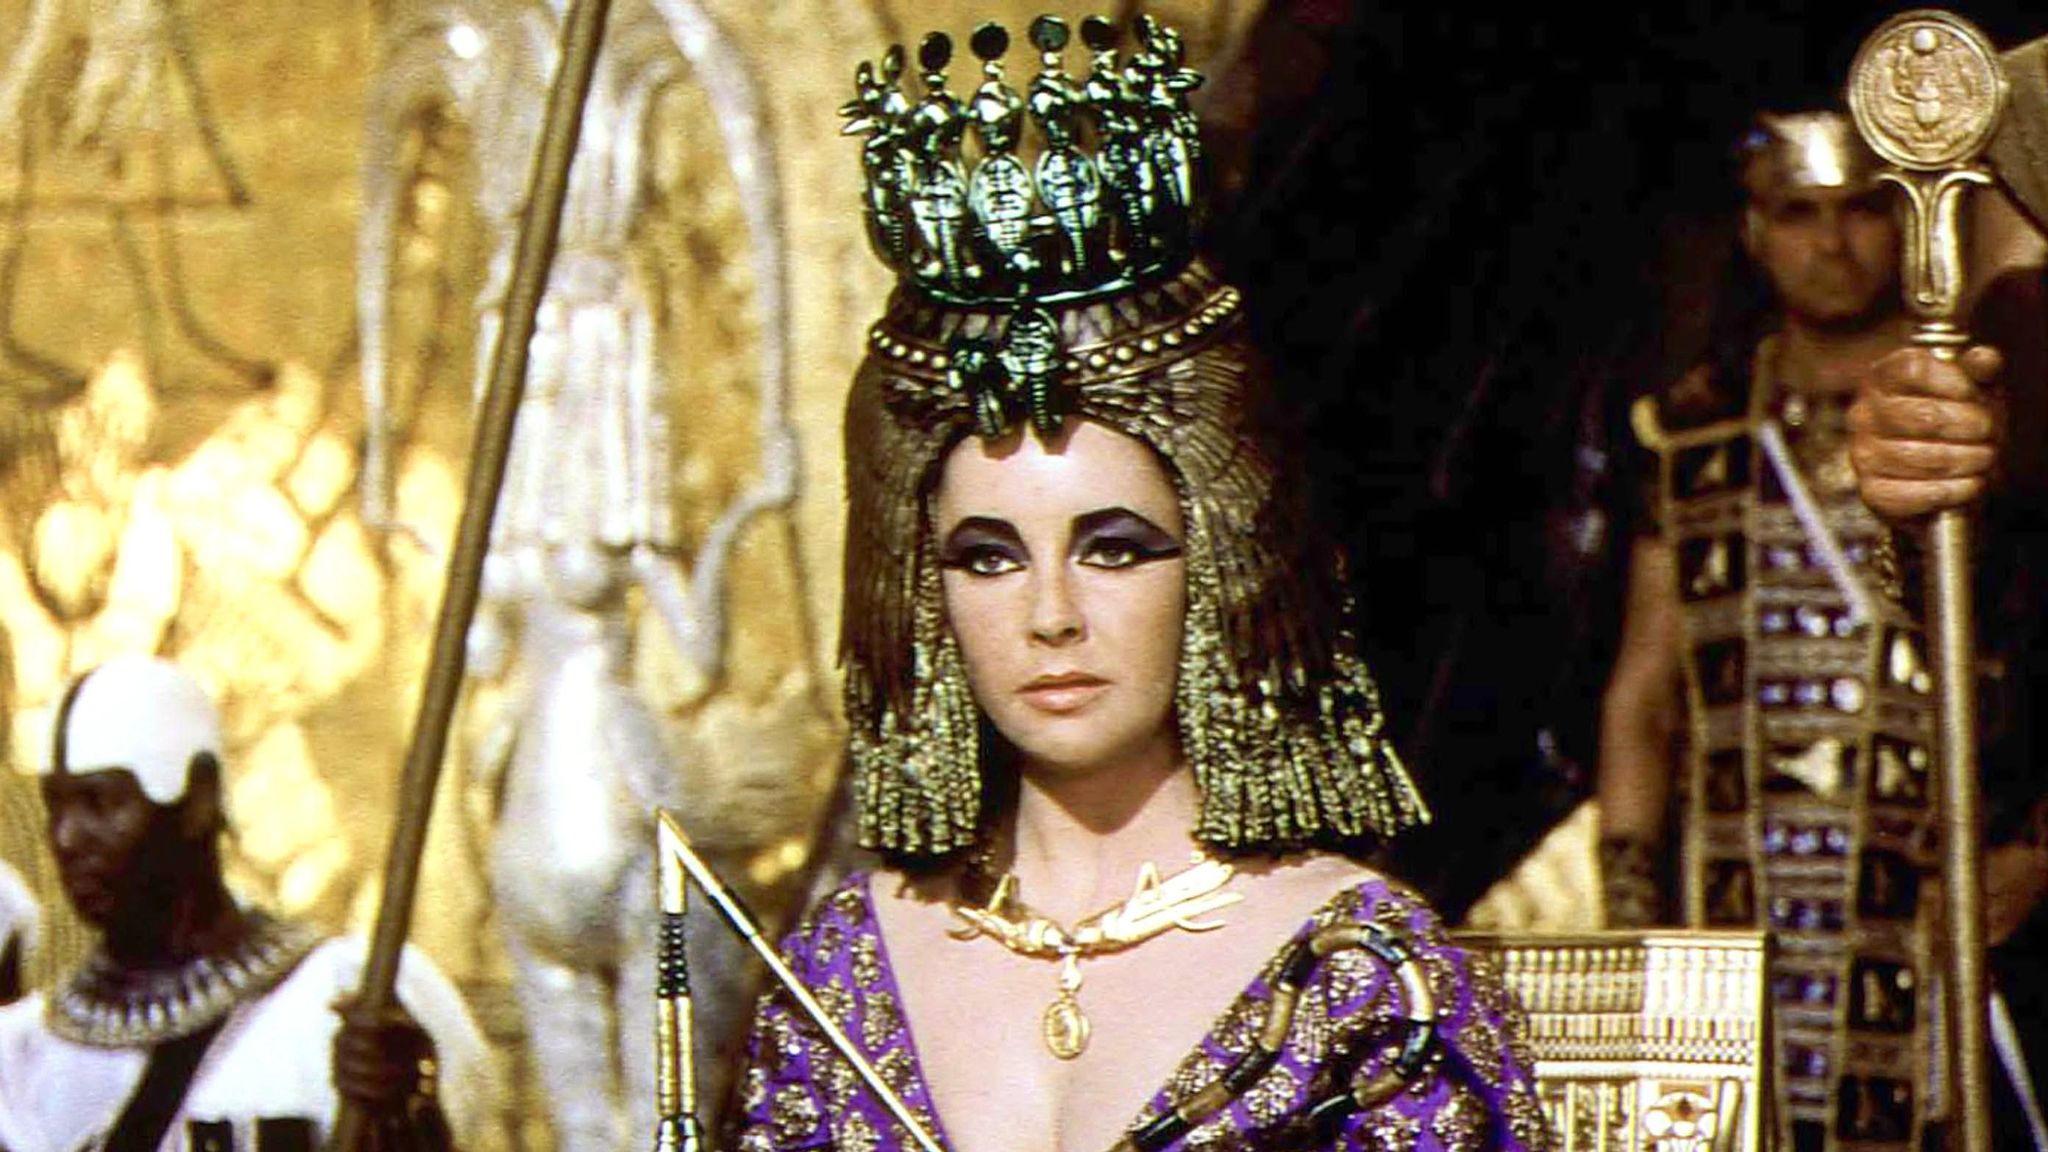 Cleopatra No 5? Scientists recreate ancient Egyptian queen's perfume   Science & Tech News   Sky News